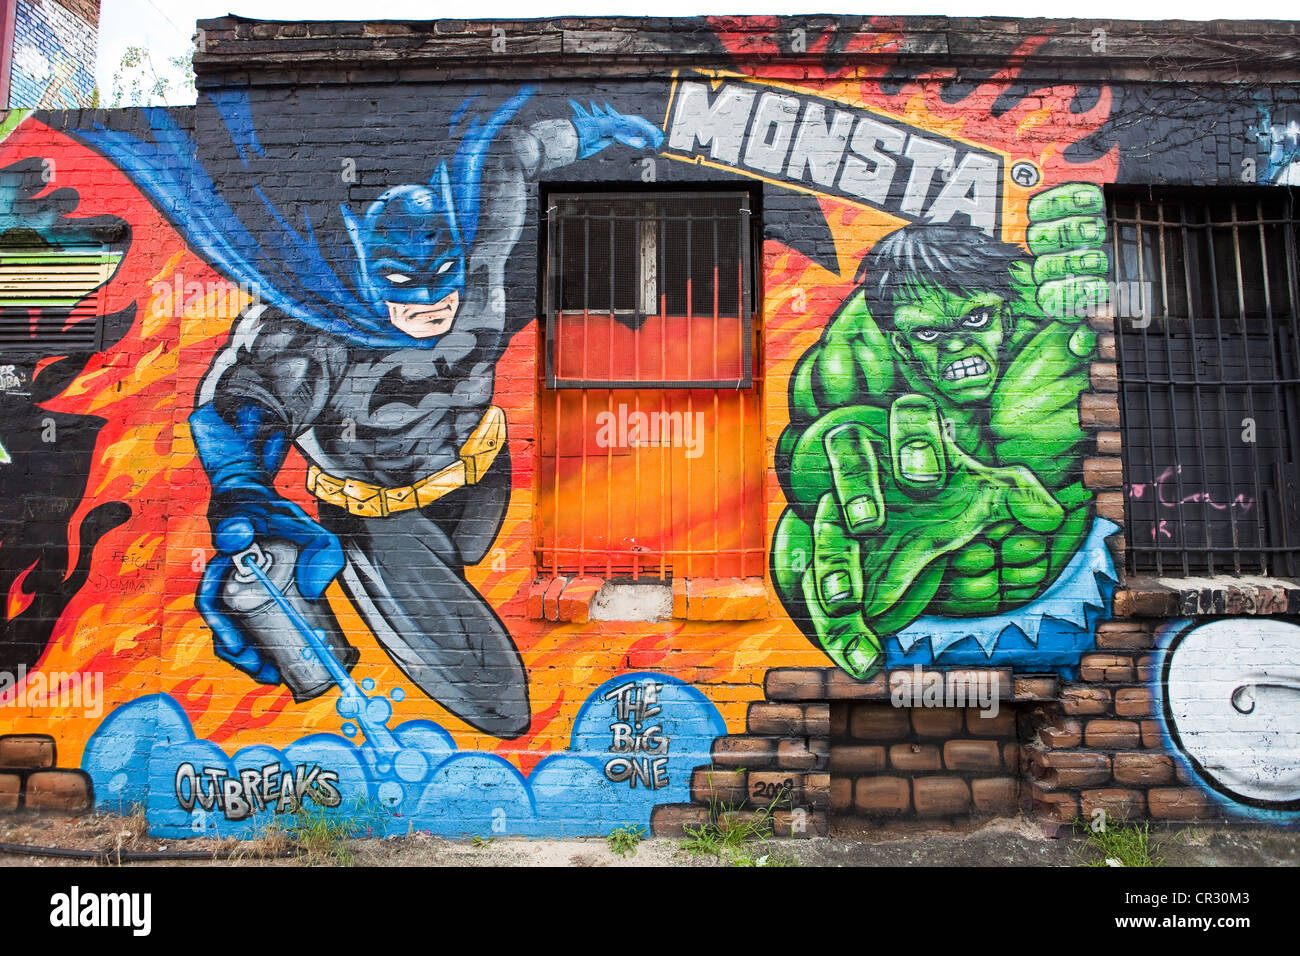 Germany, Berlin, Friedrichshain District, mural (tag) with the superheroes Batman and Hulk - Stock Image